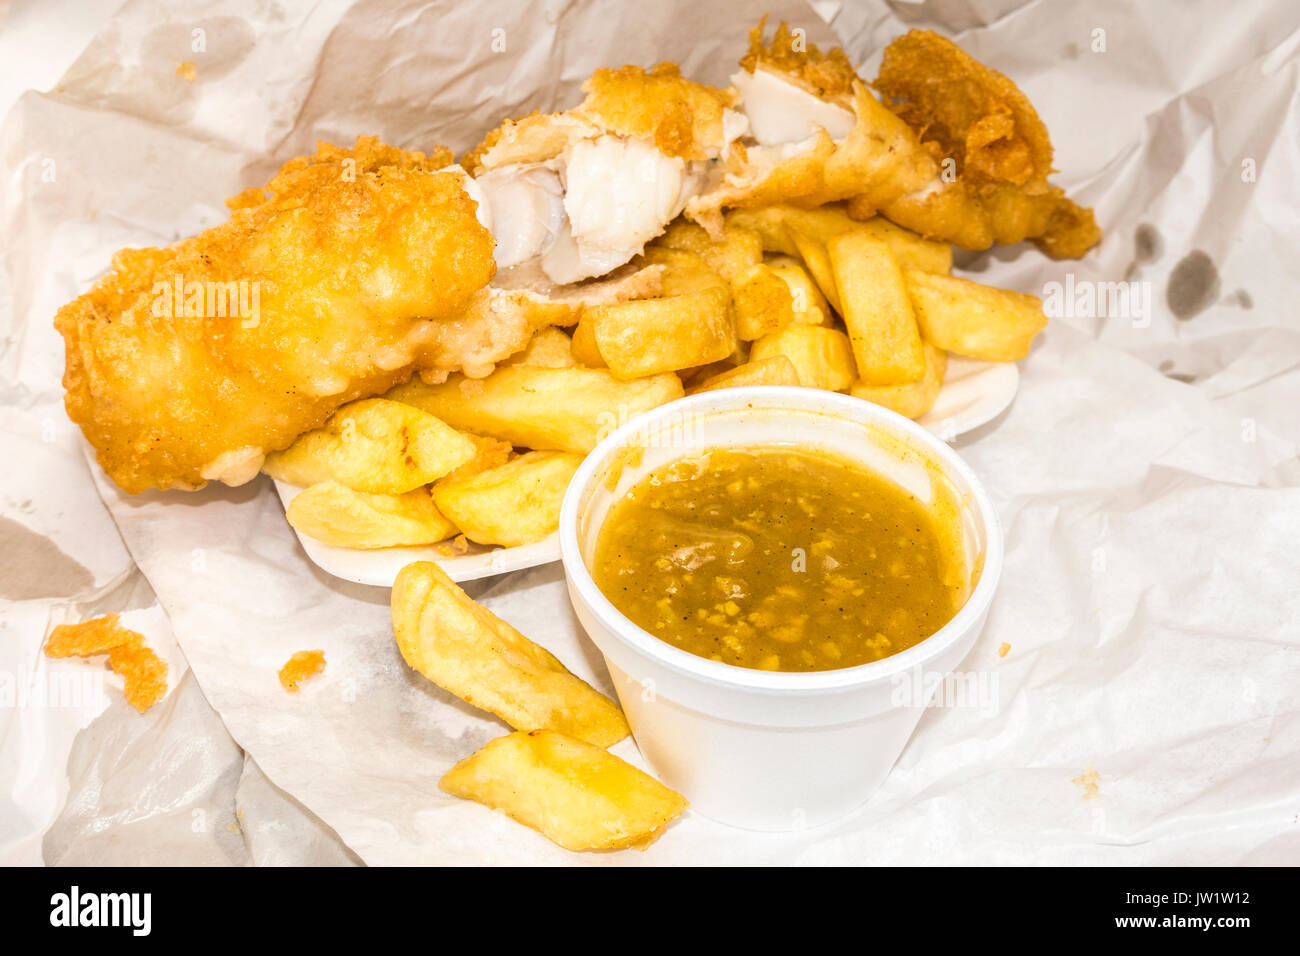 Traditional British takeaway meal of battered fish and chips, plus curry sauce in the containers and paper wrapping. England, UK. - Stock Image